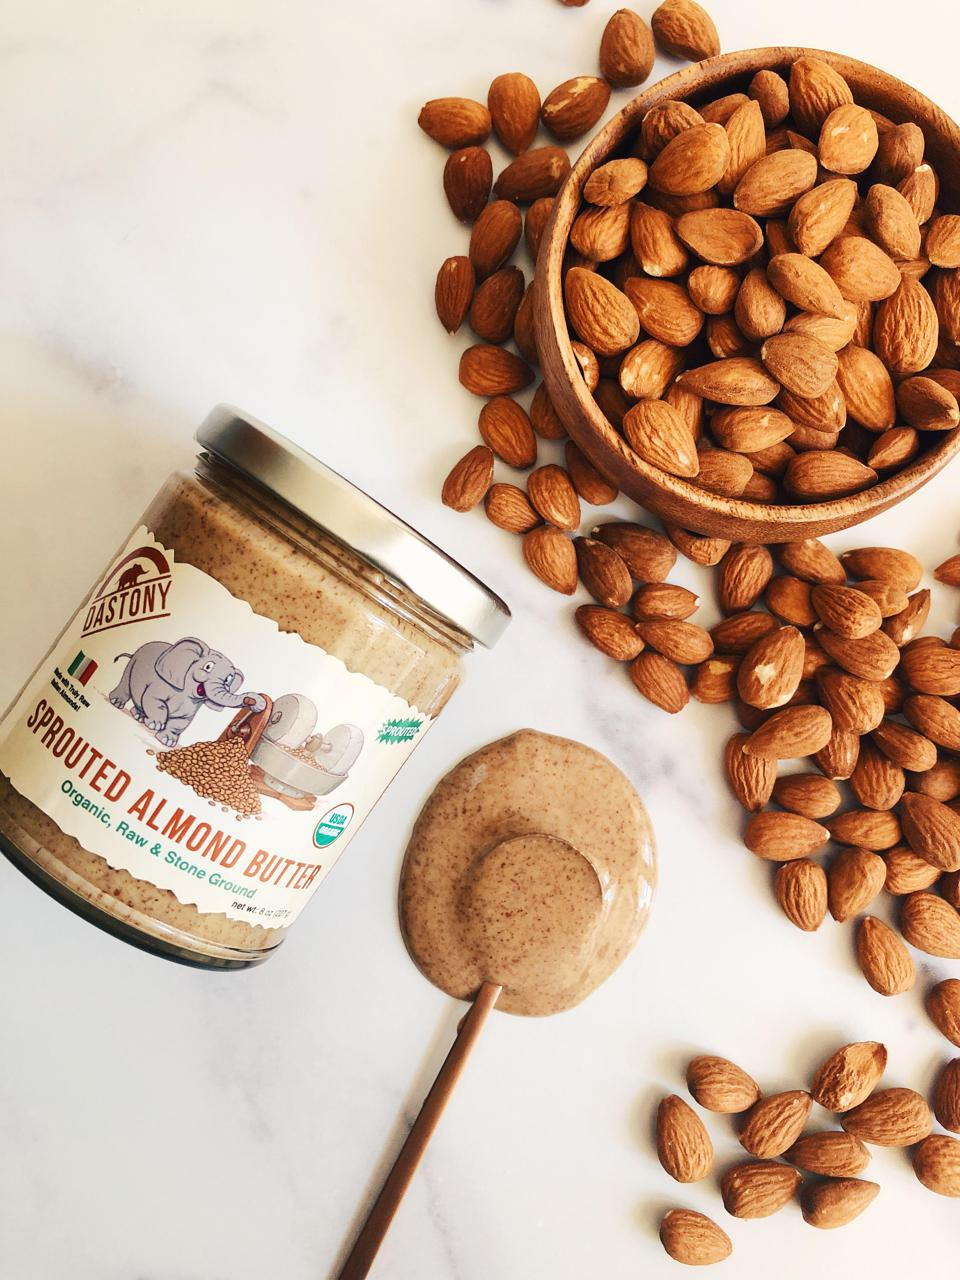 Windy City Organics sells sprouted nut and seed butters made with one single ingredient.